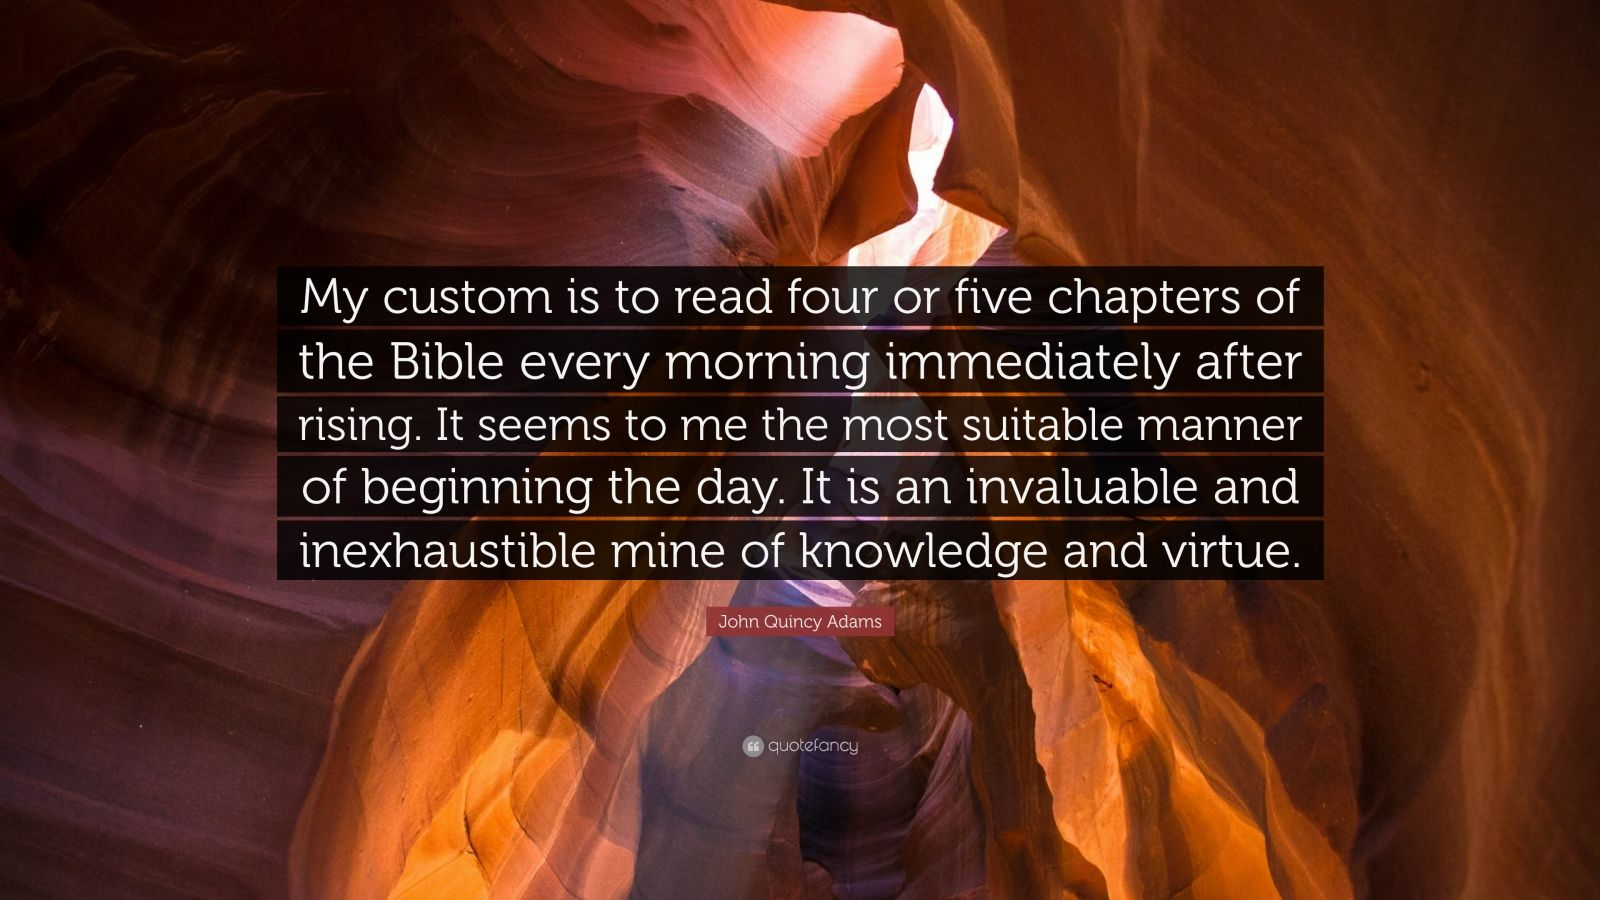 """John Quincy Adams Quote: """"My custom is to read four or five chapters of the Bible every morning immediately after rising. It seems to me the most suitable manner of beginning the day. It is an invaluable and inexhaustible mine of knowledge and virtue."""""""